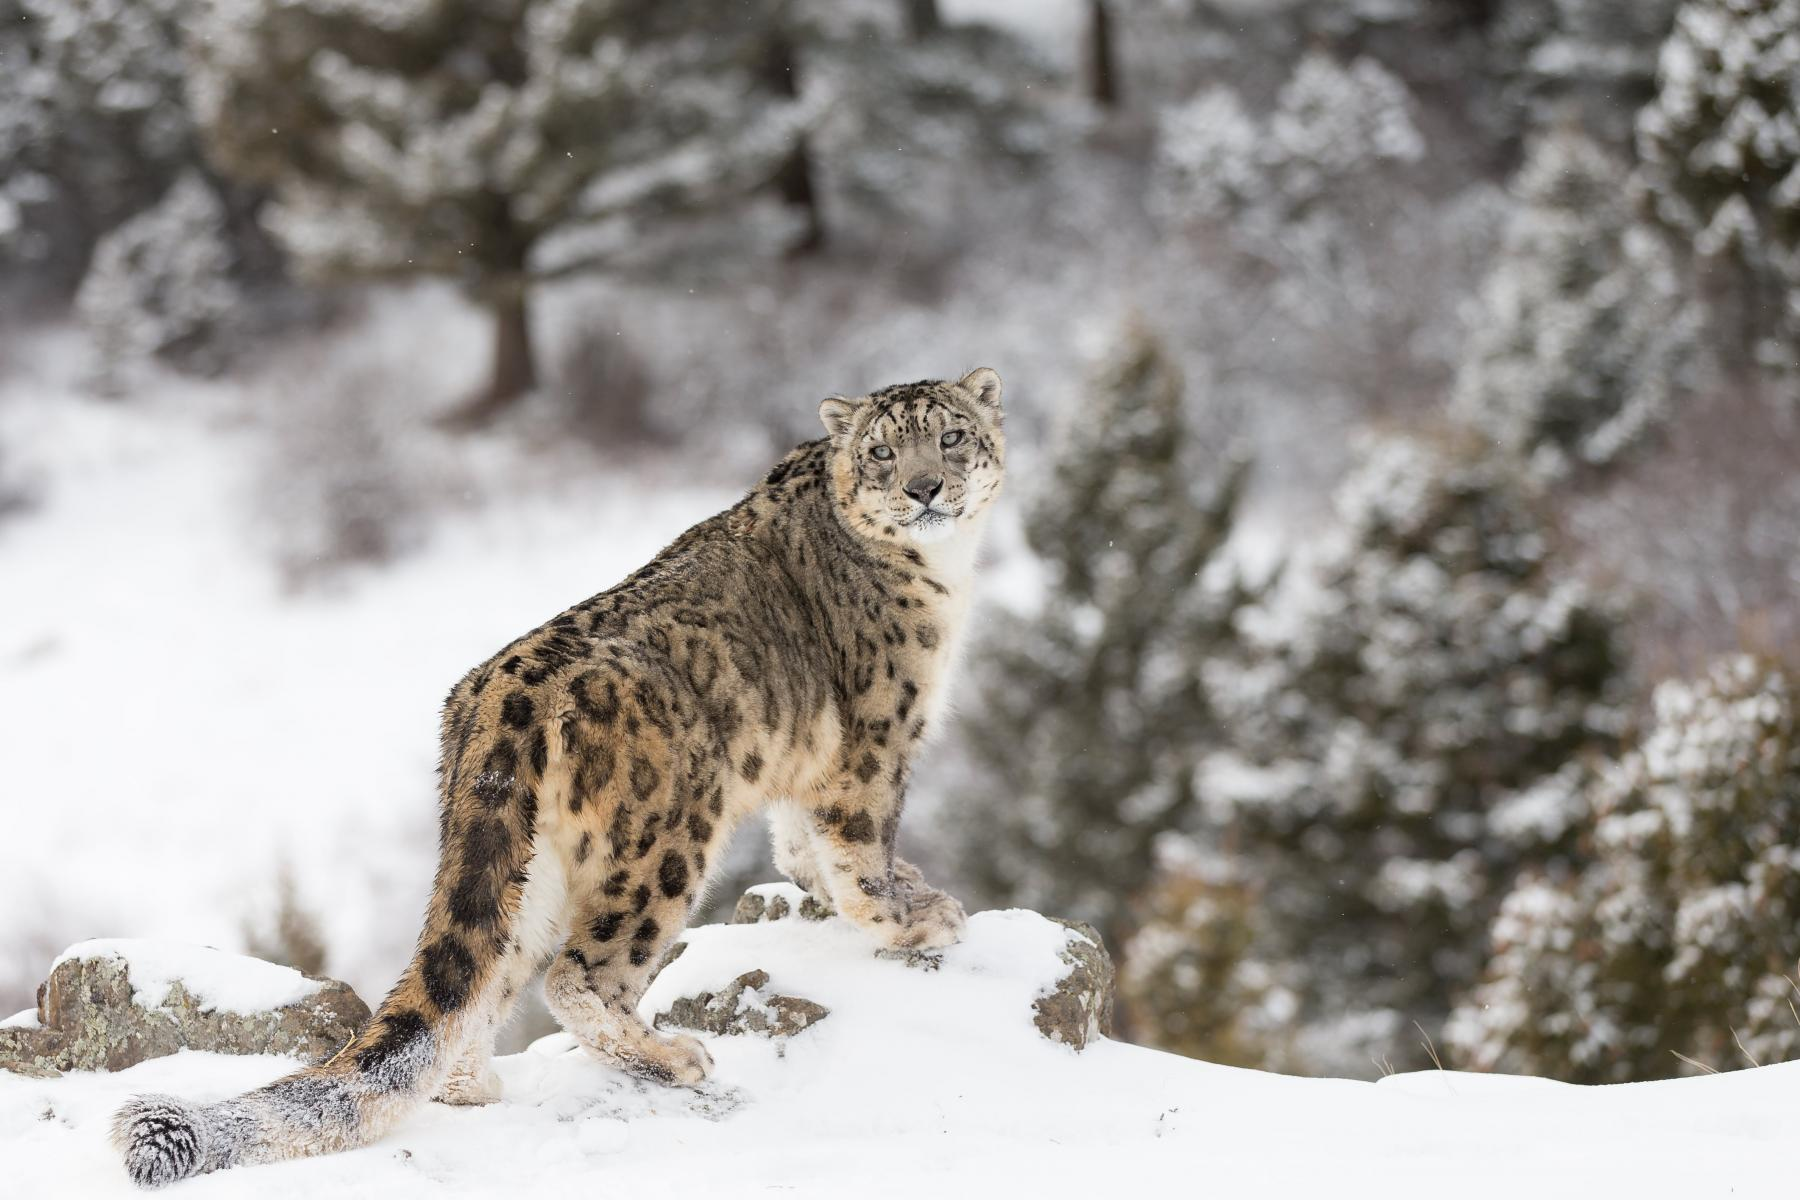 snow leopard in snow